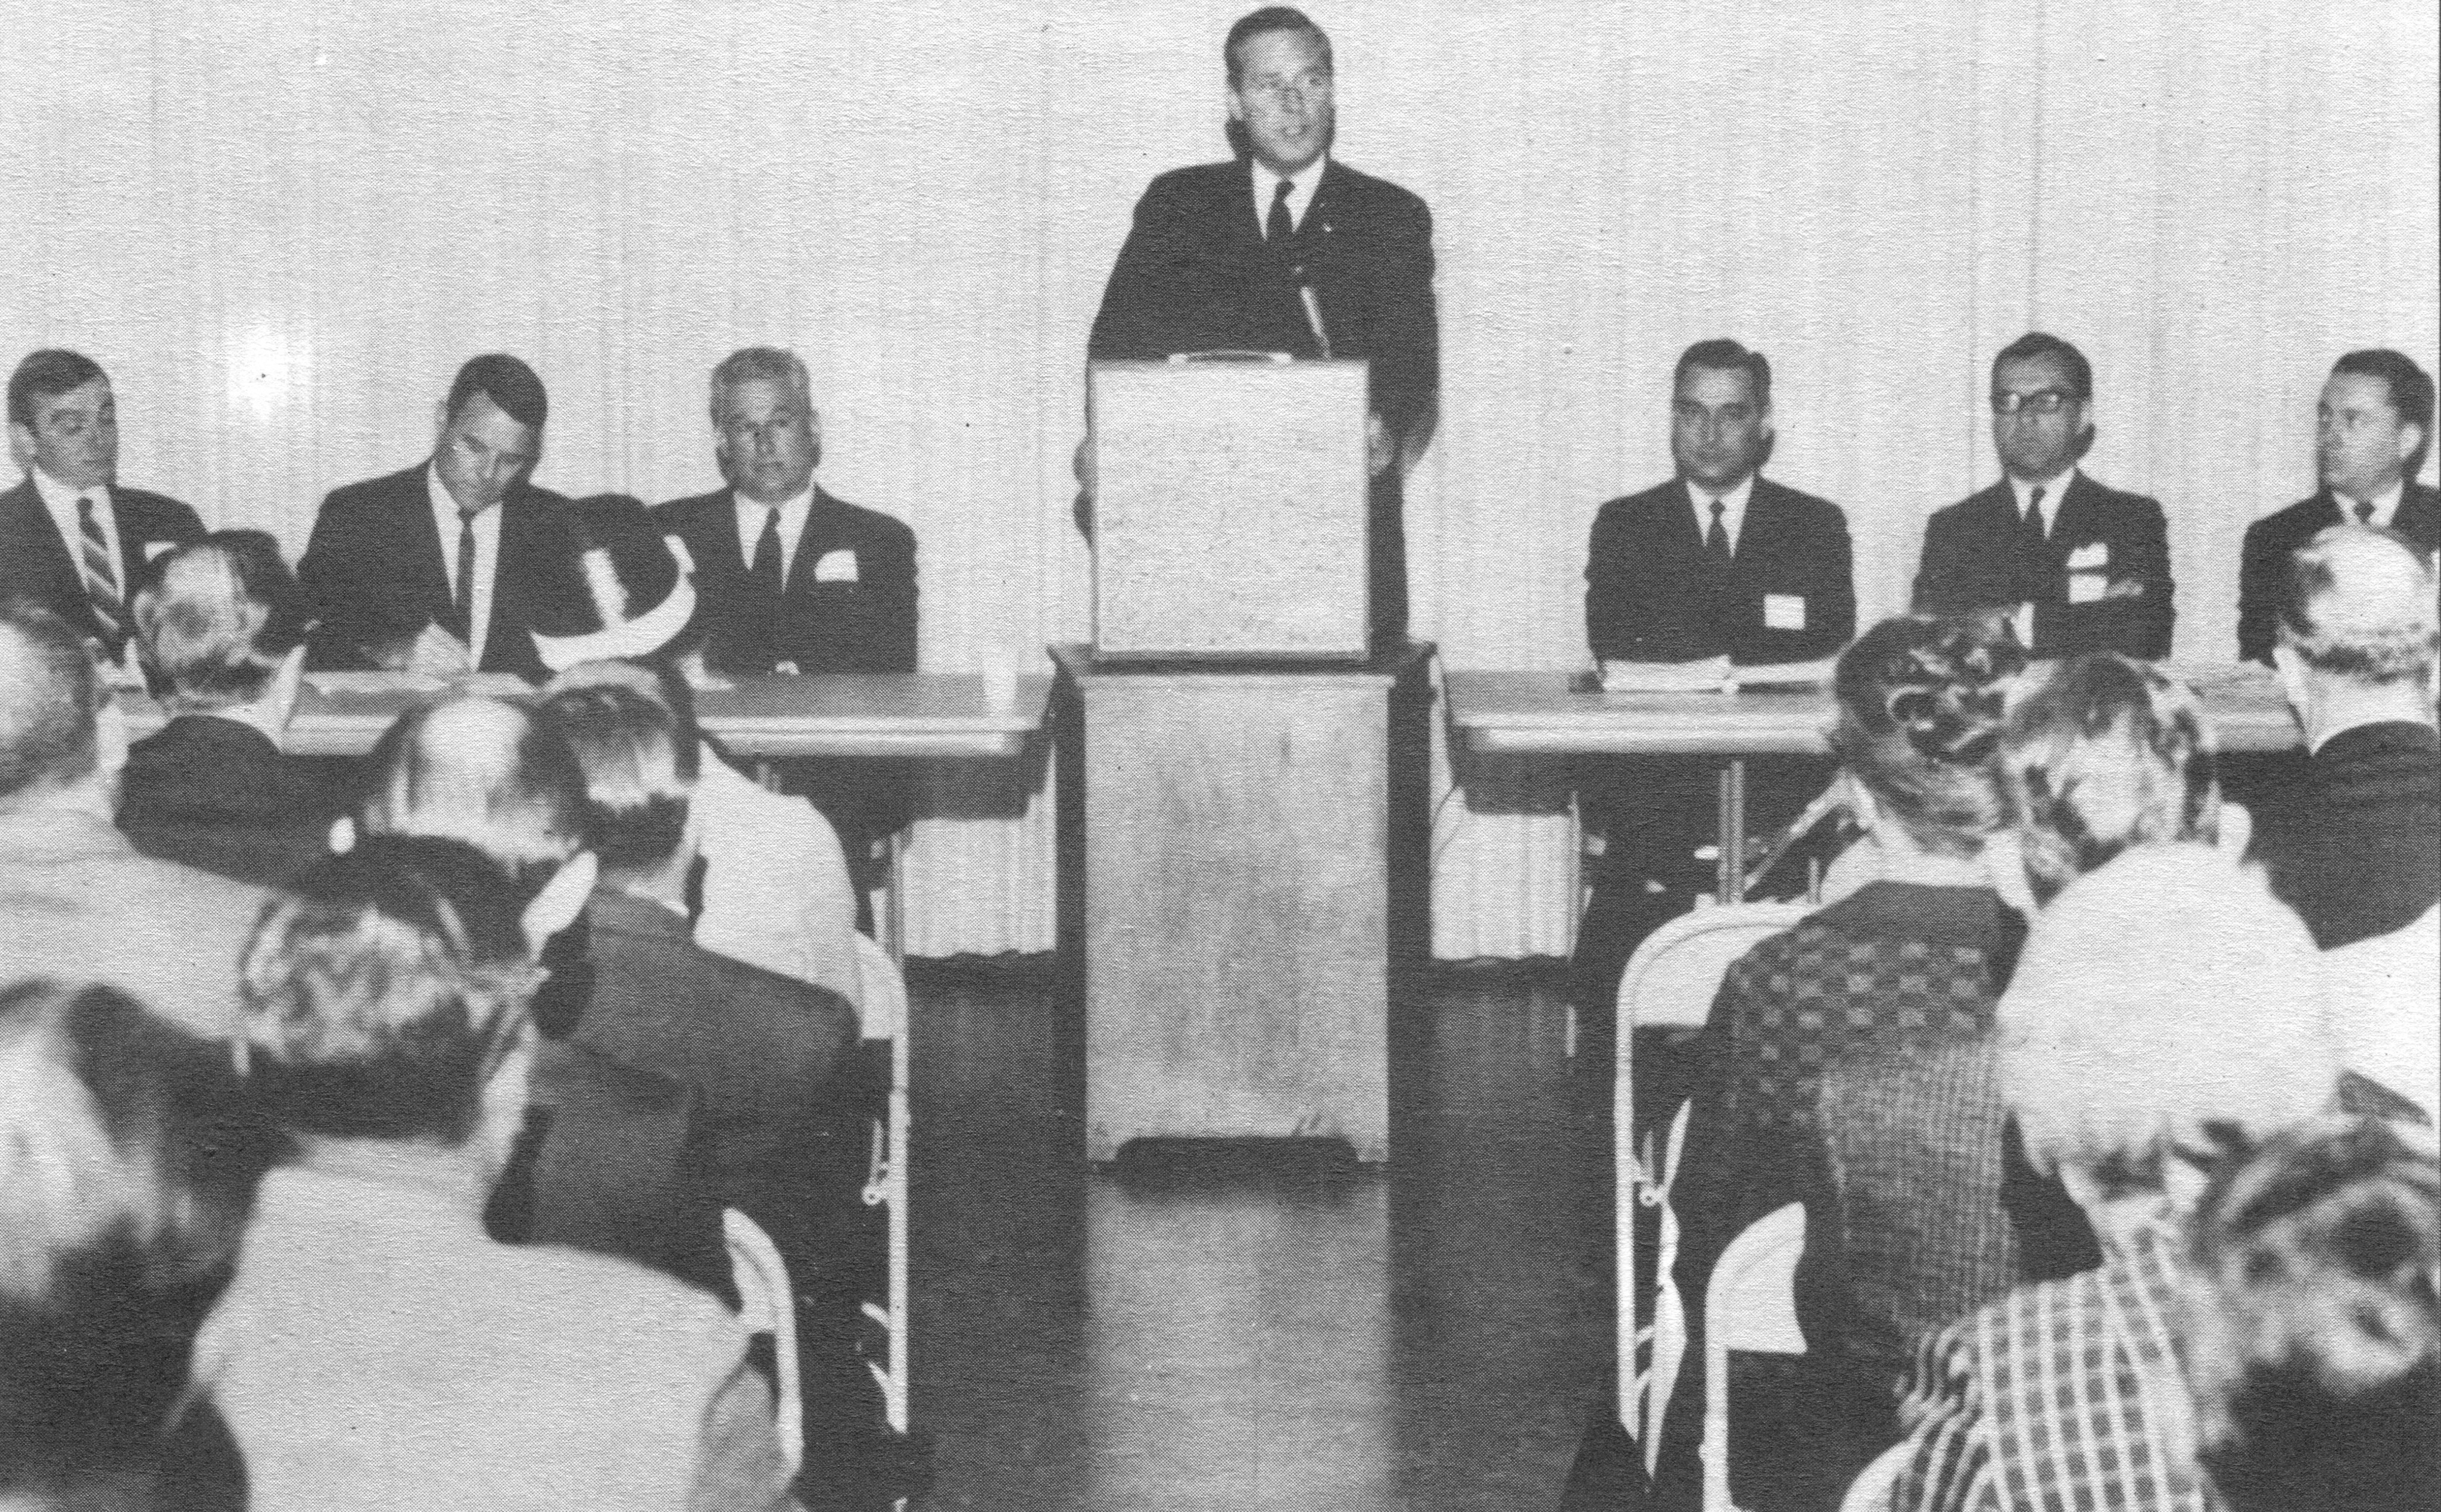 Robert M Utley Third From Right As A Panelist At The Denver